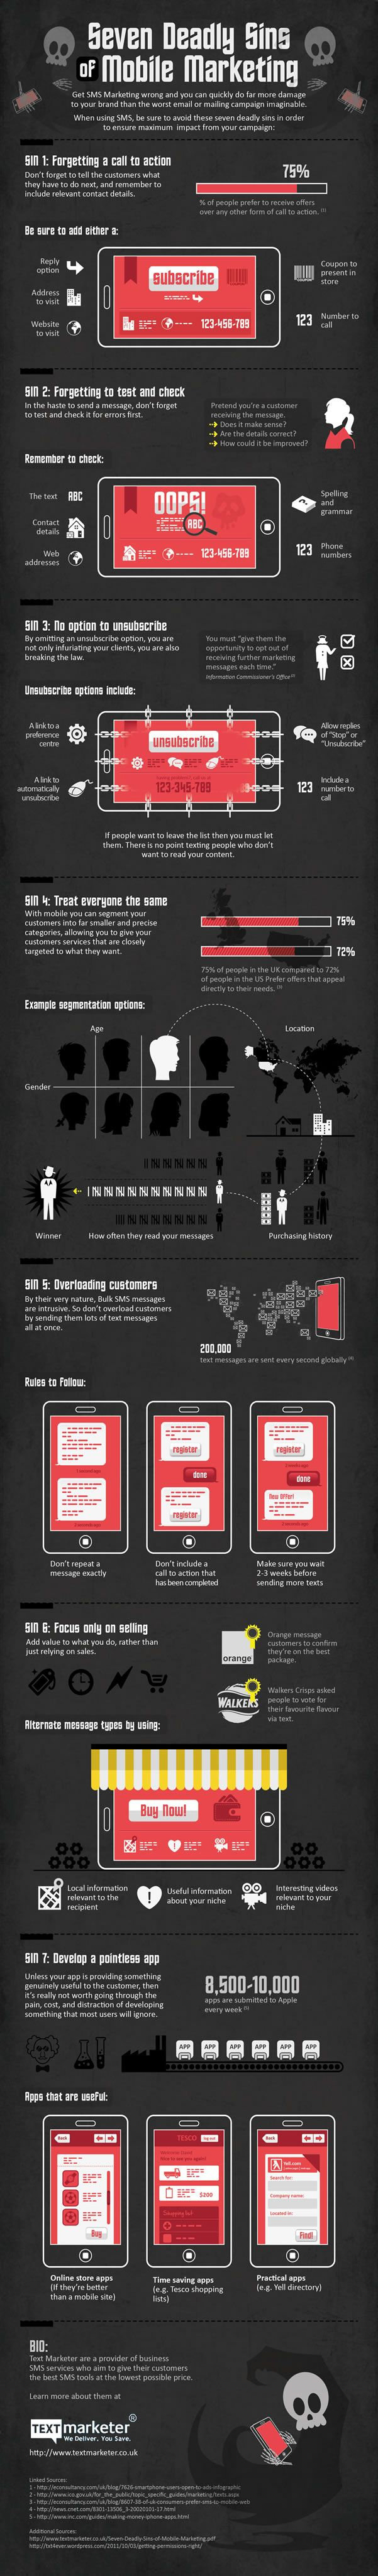 7 Deadly Sins of SMS Mobile Marketing [Infographic] http://j.mp/J6MC33 #mobile #UX #CRO